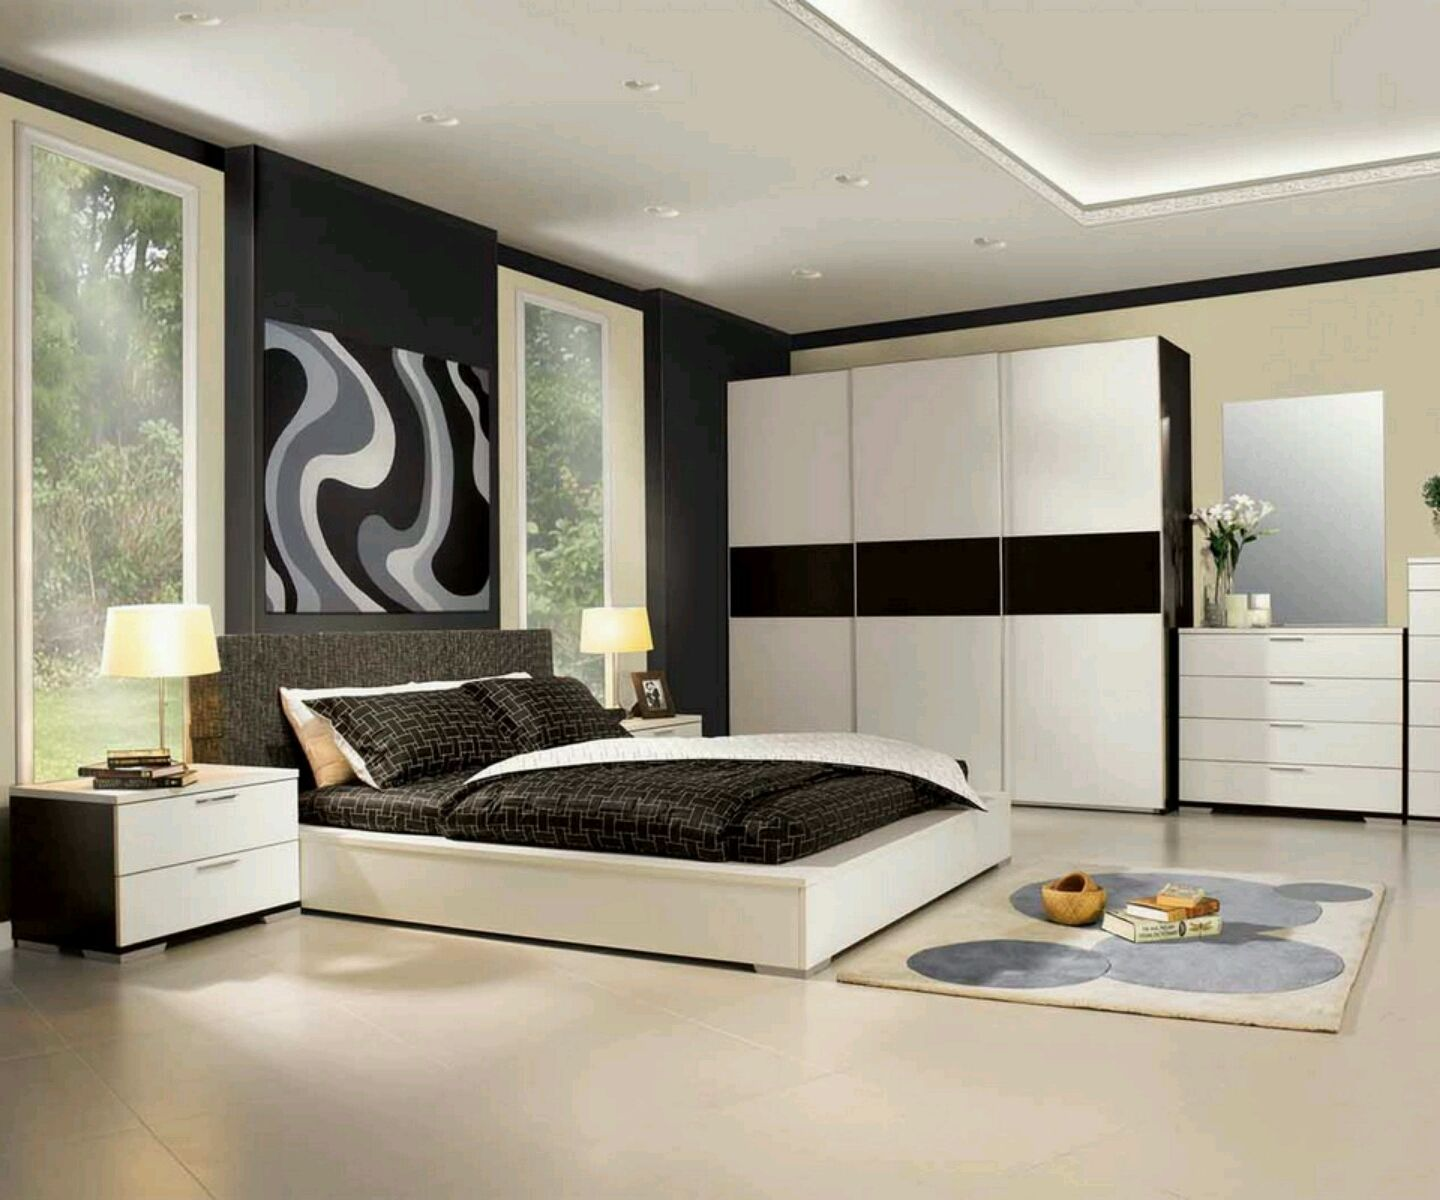 Modern Bedroom Furniture Design For More Pictures And Design Ideas Please Visit My Blog Http